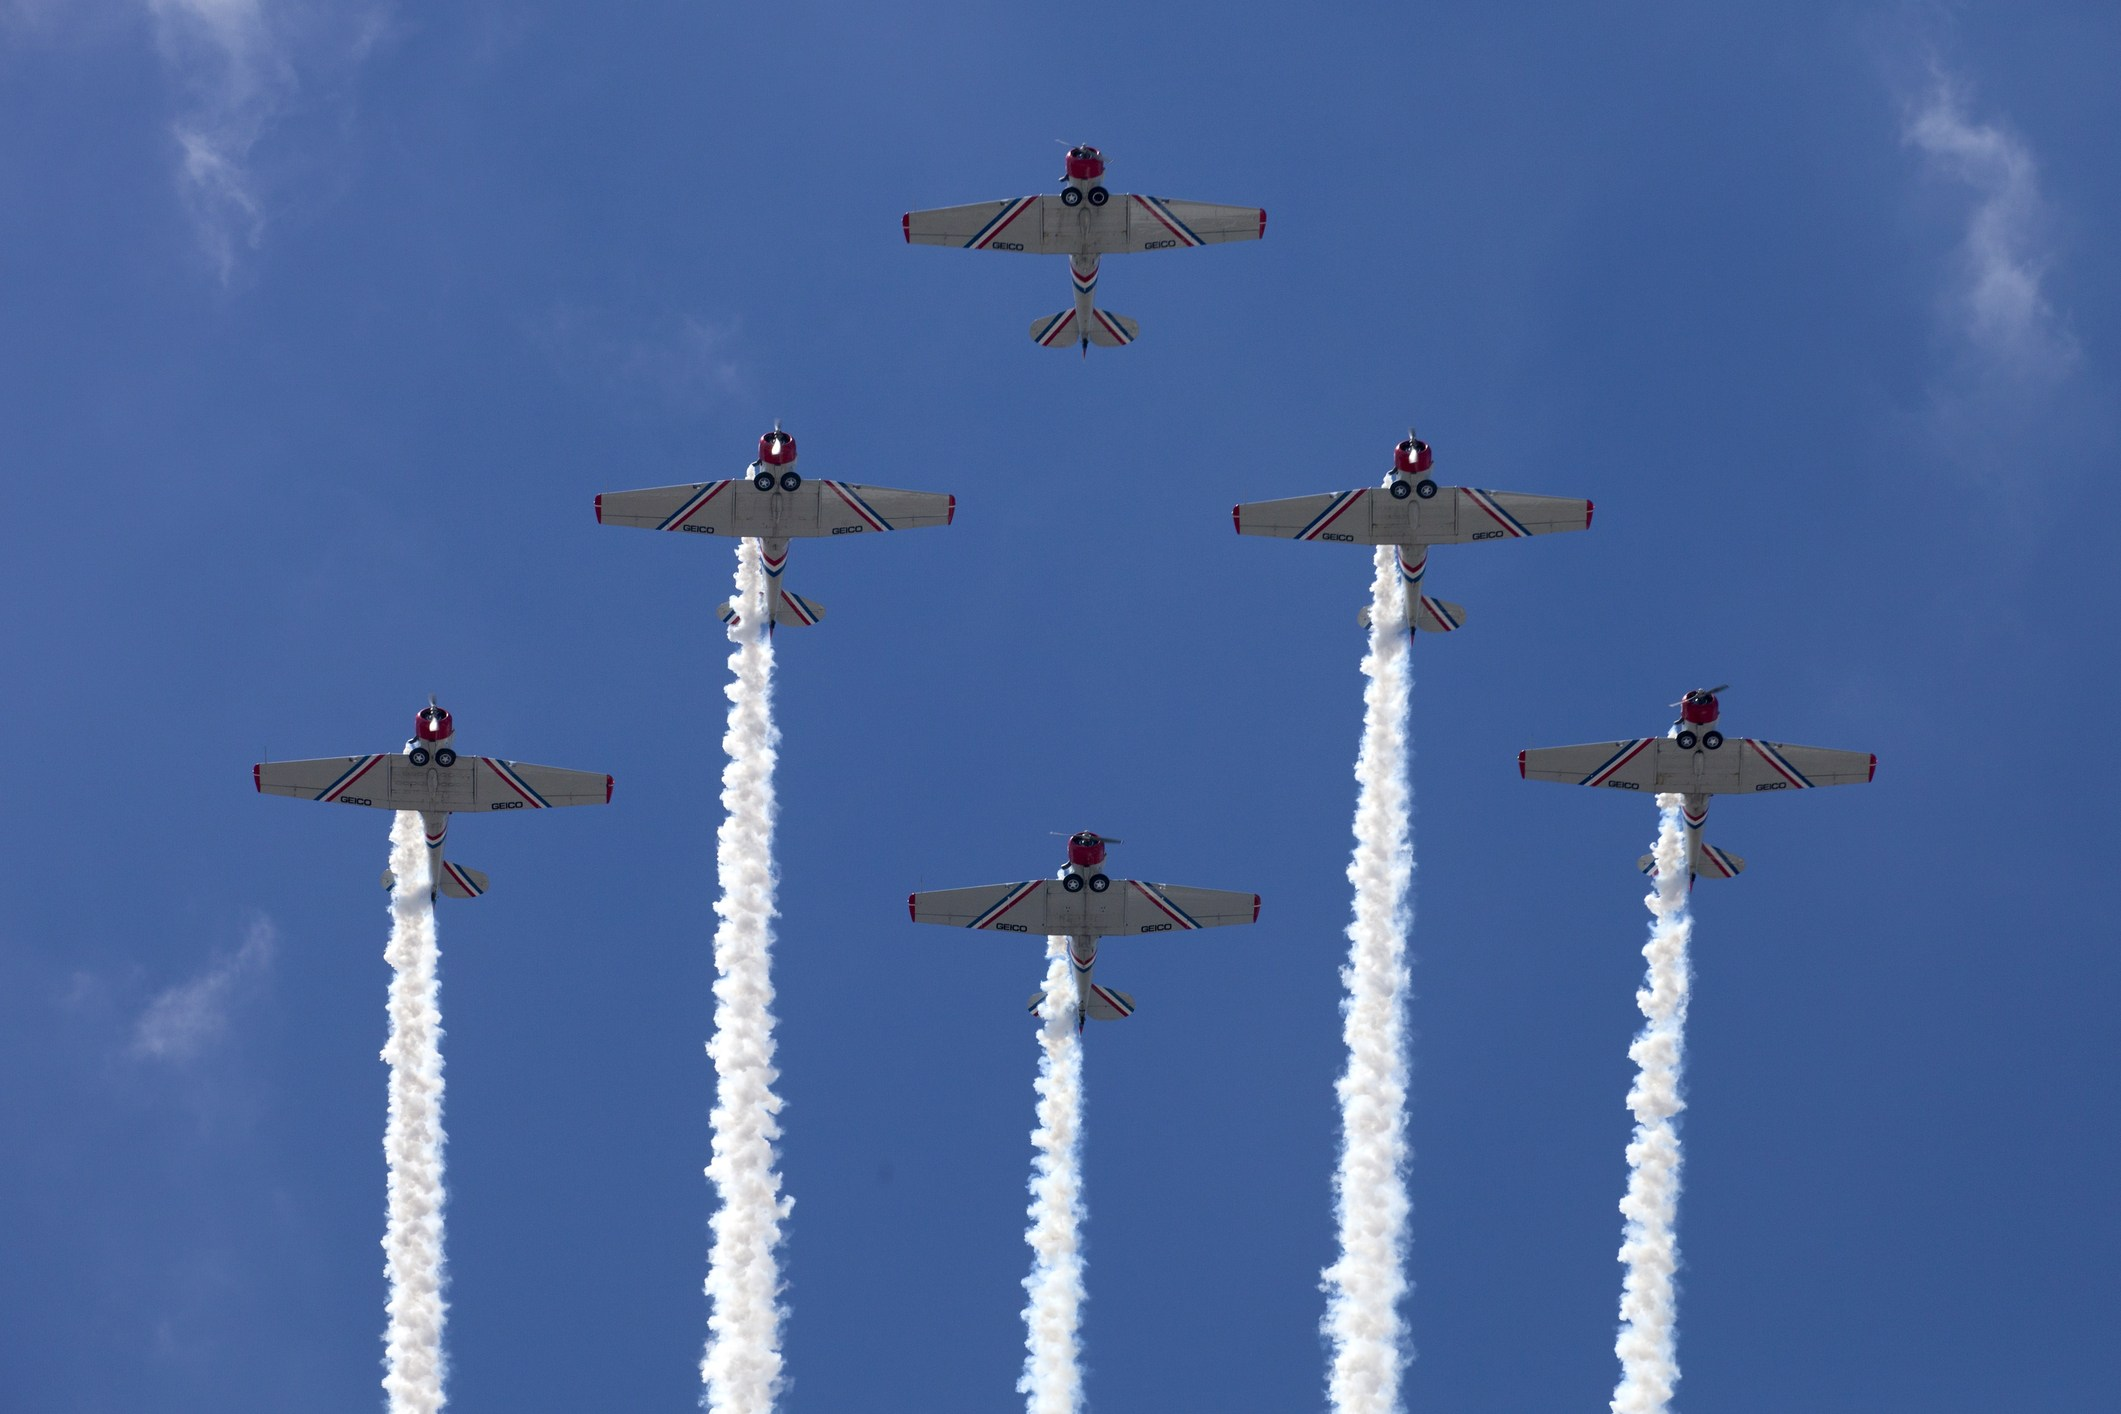 Air Force jets flying in formation